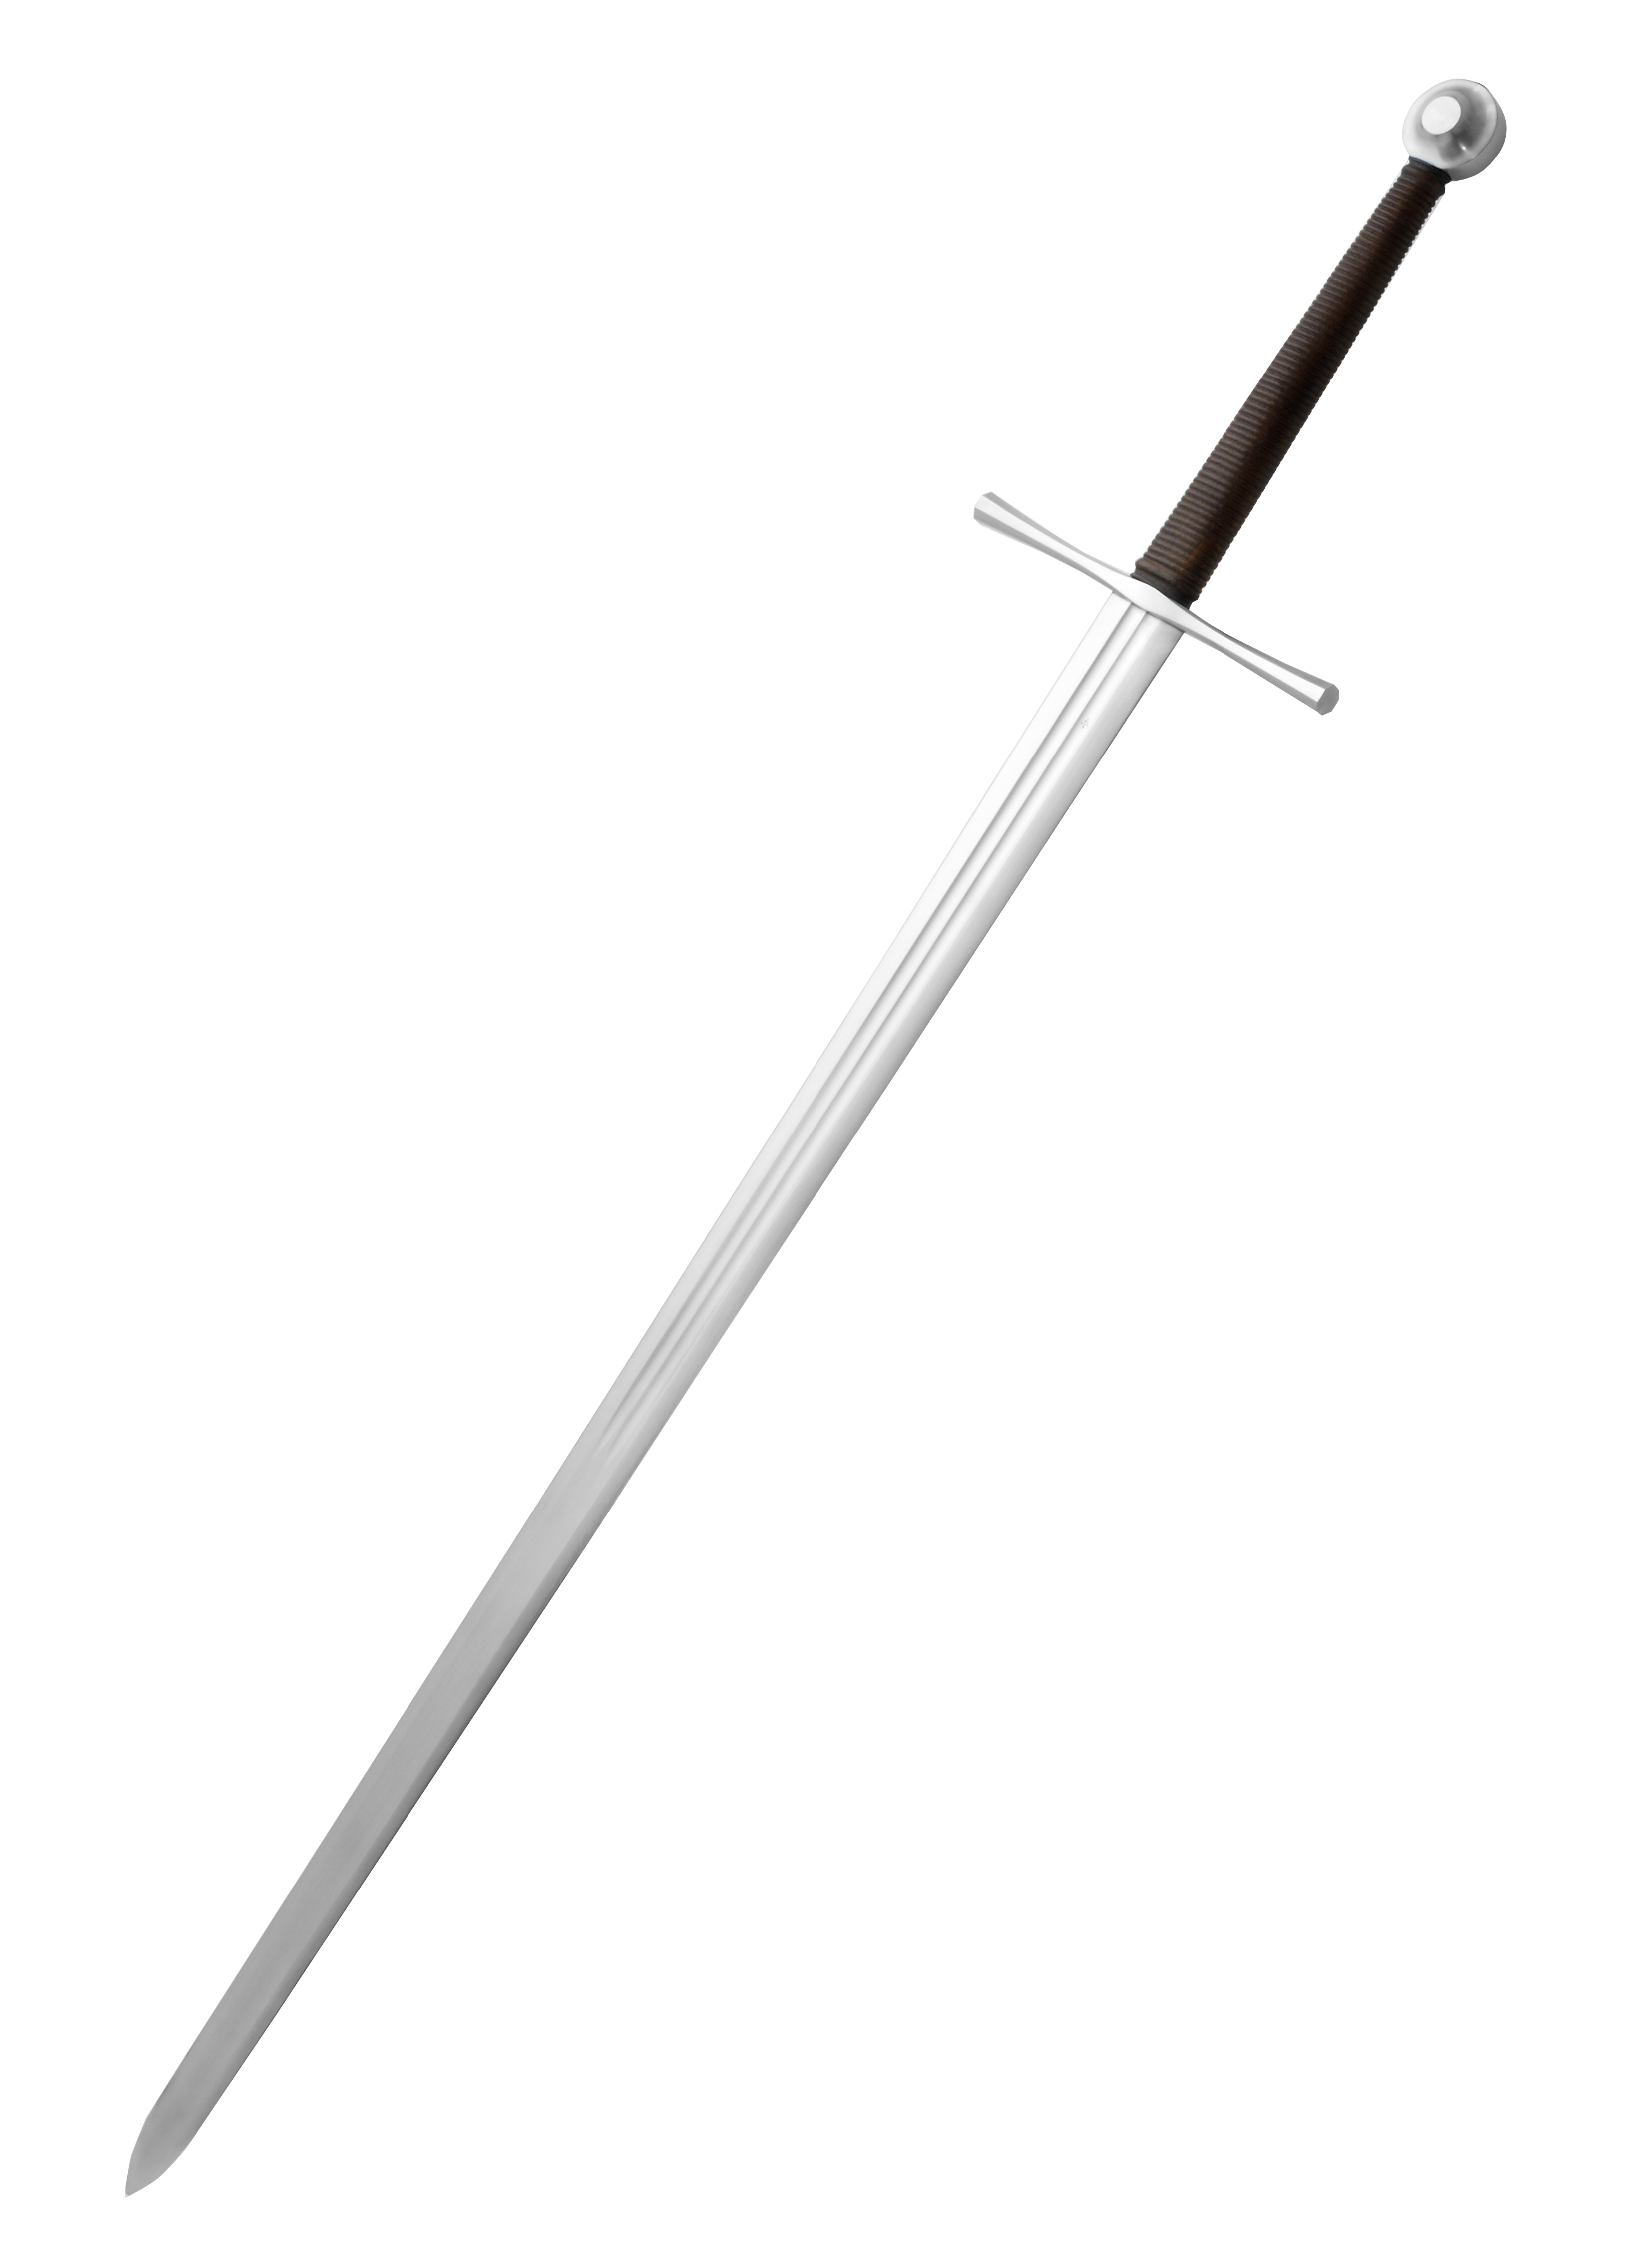 Swordsman drawing weapon. What is a hand